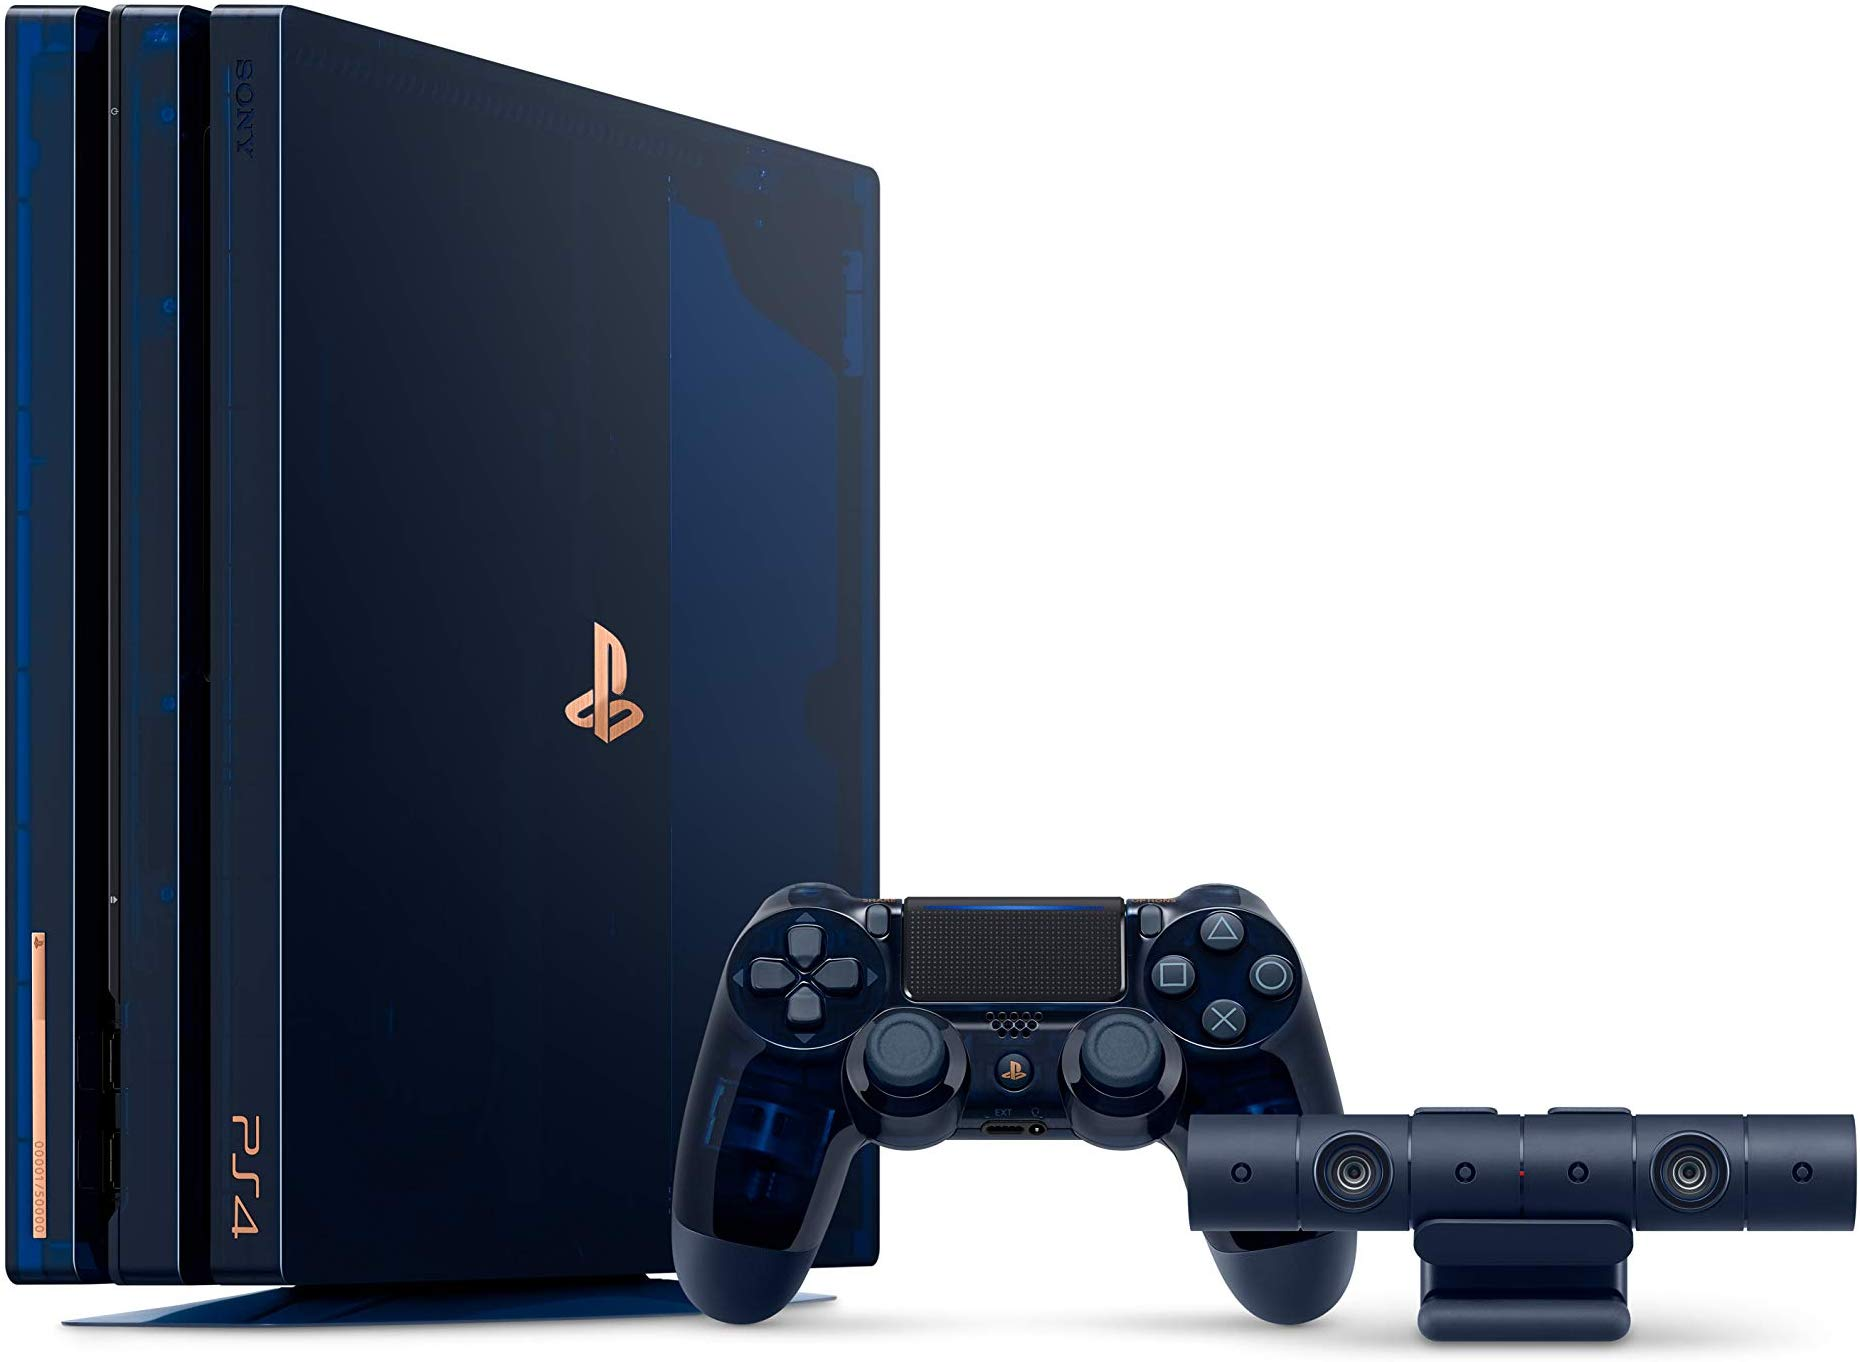 Where and how to buy the super limited edition 500 Million PS4 Pro